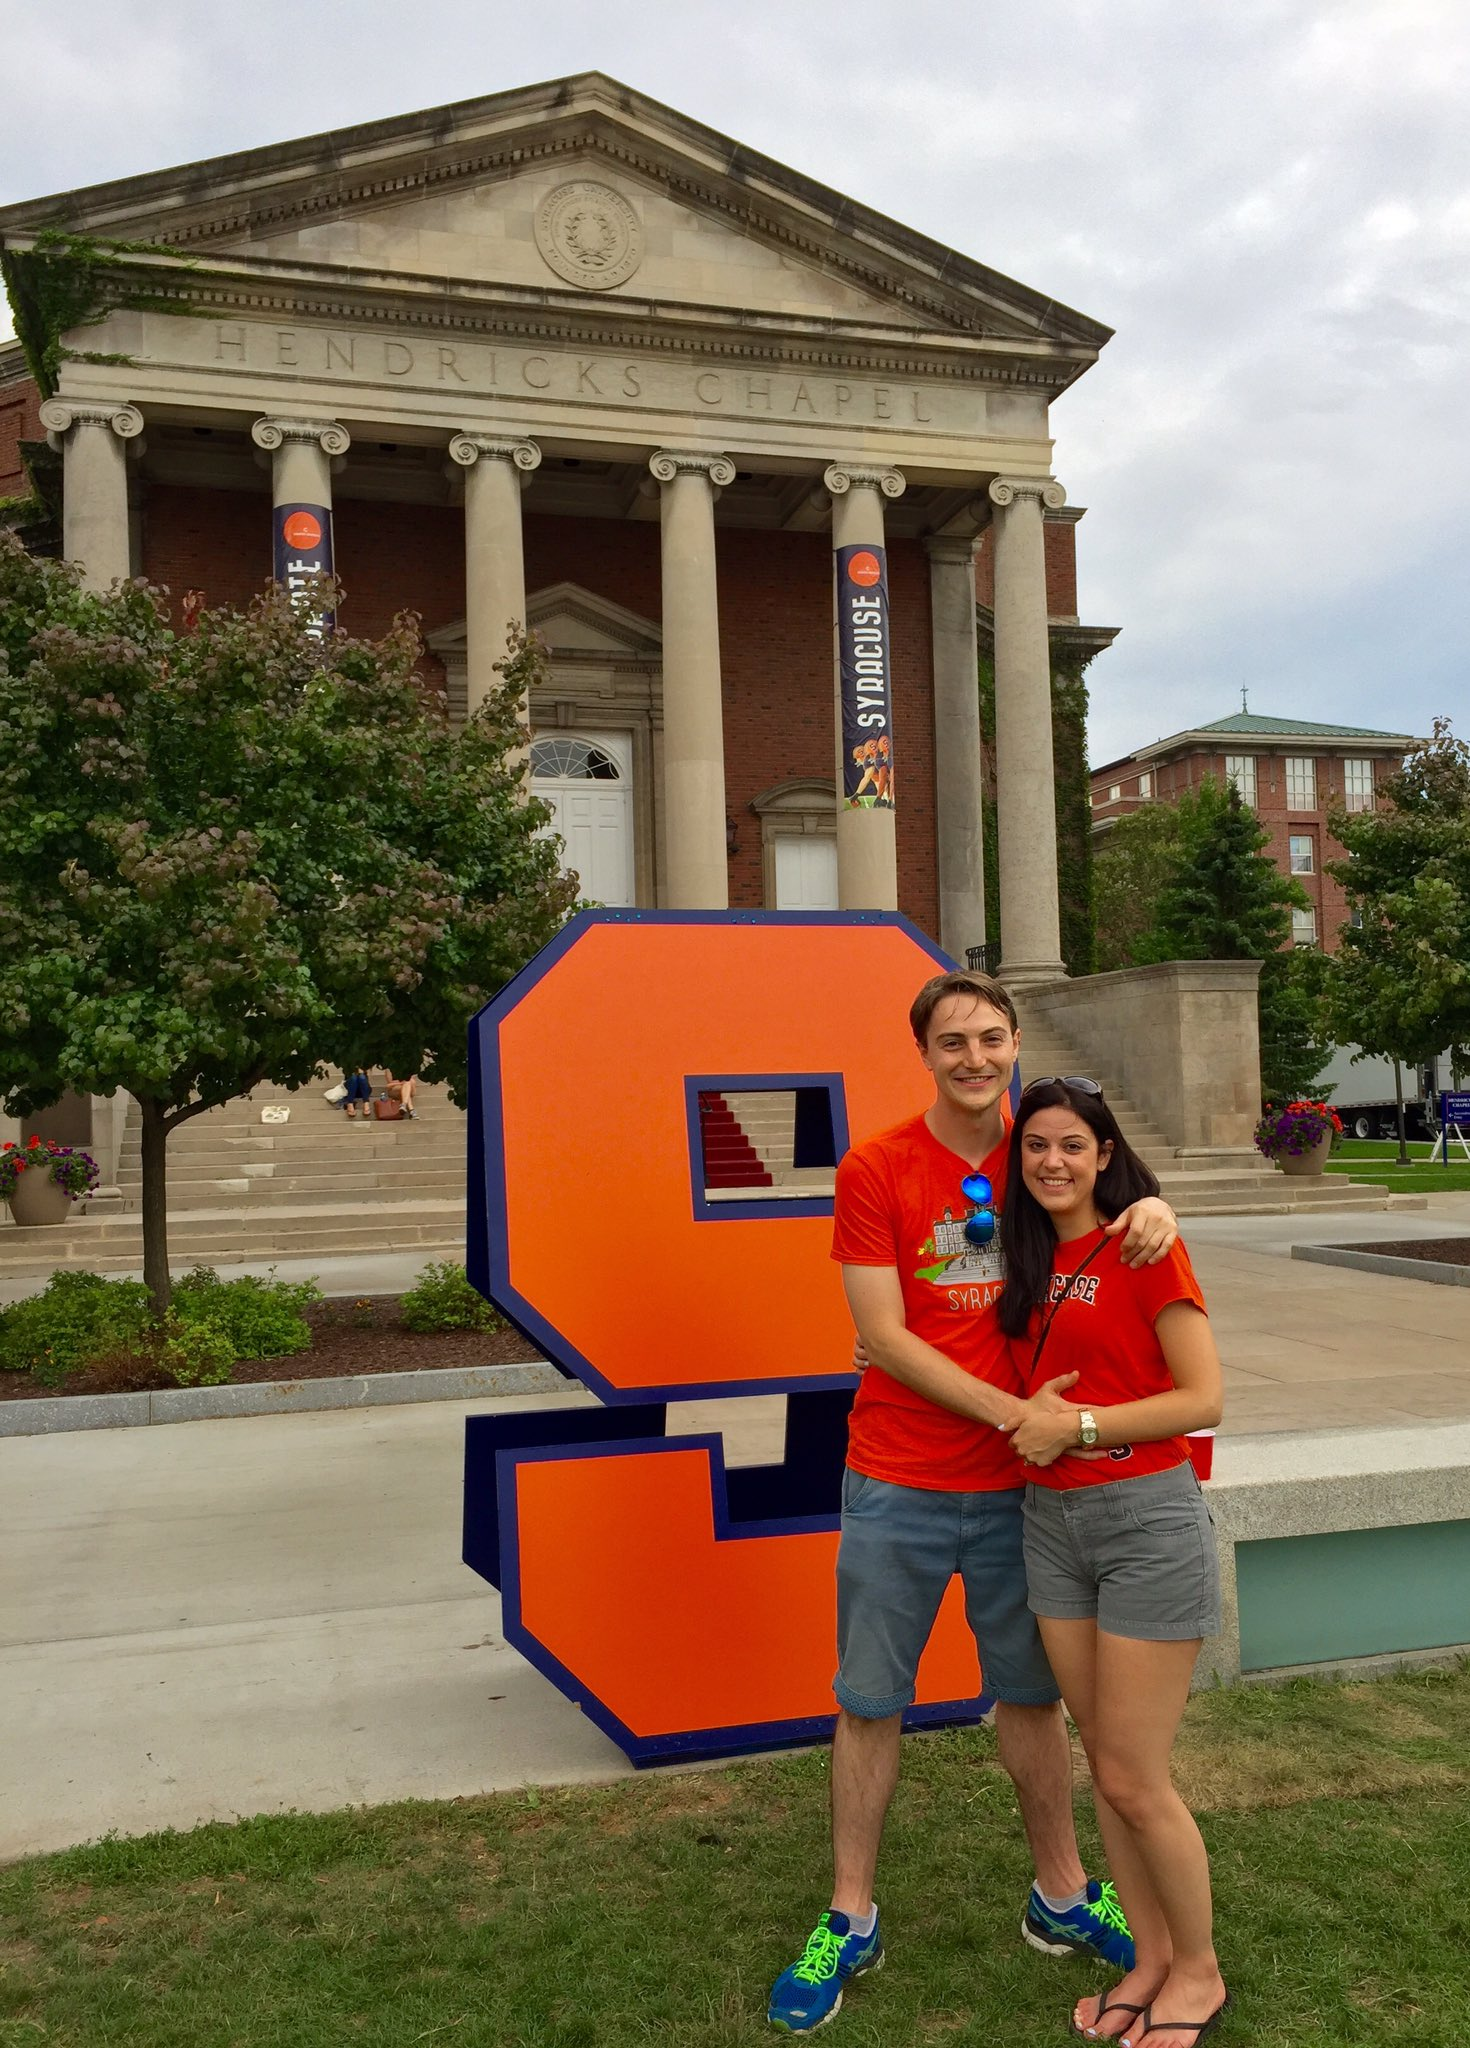 They traveled  from England for #OrangeCentral! @kdolinsek '13 wanted to show off @SyracuseU campus to her fiancé! https://t.co/q9SDcPFdpk